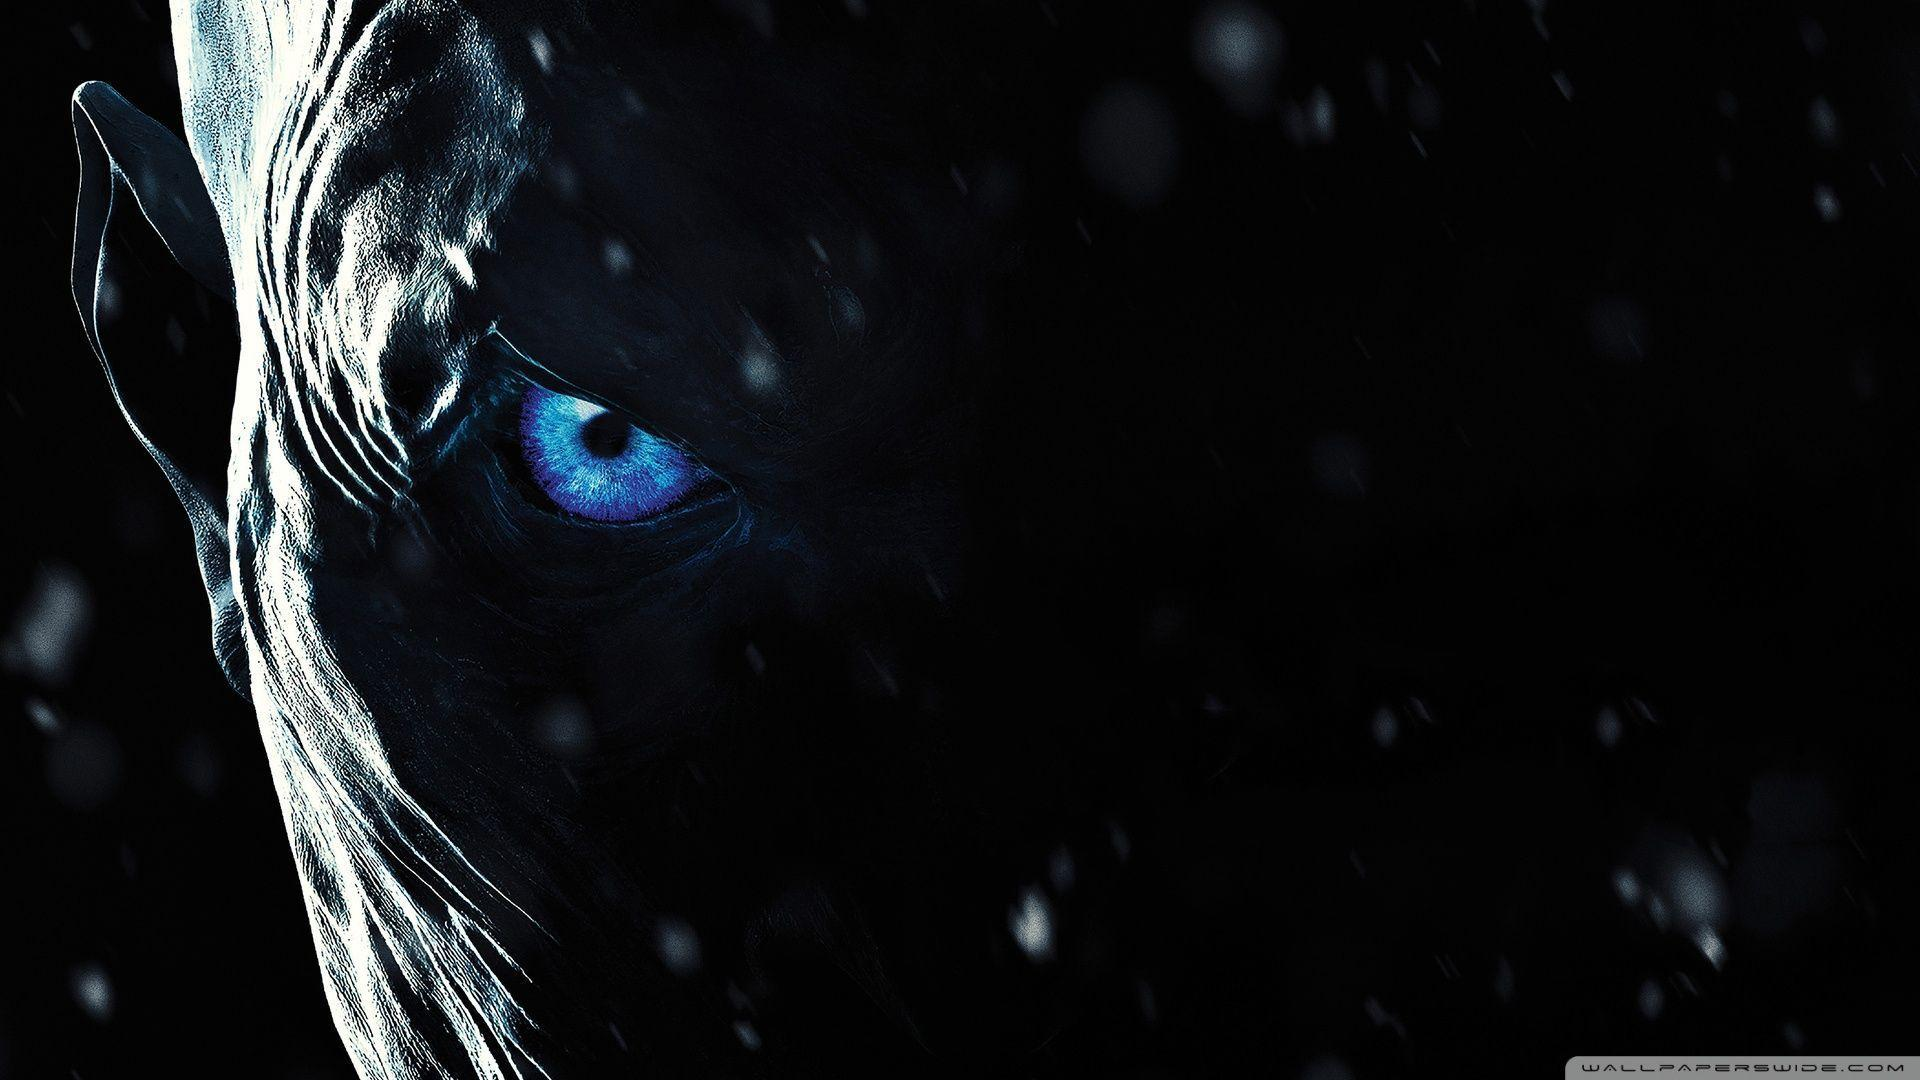 night king wallpaper